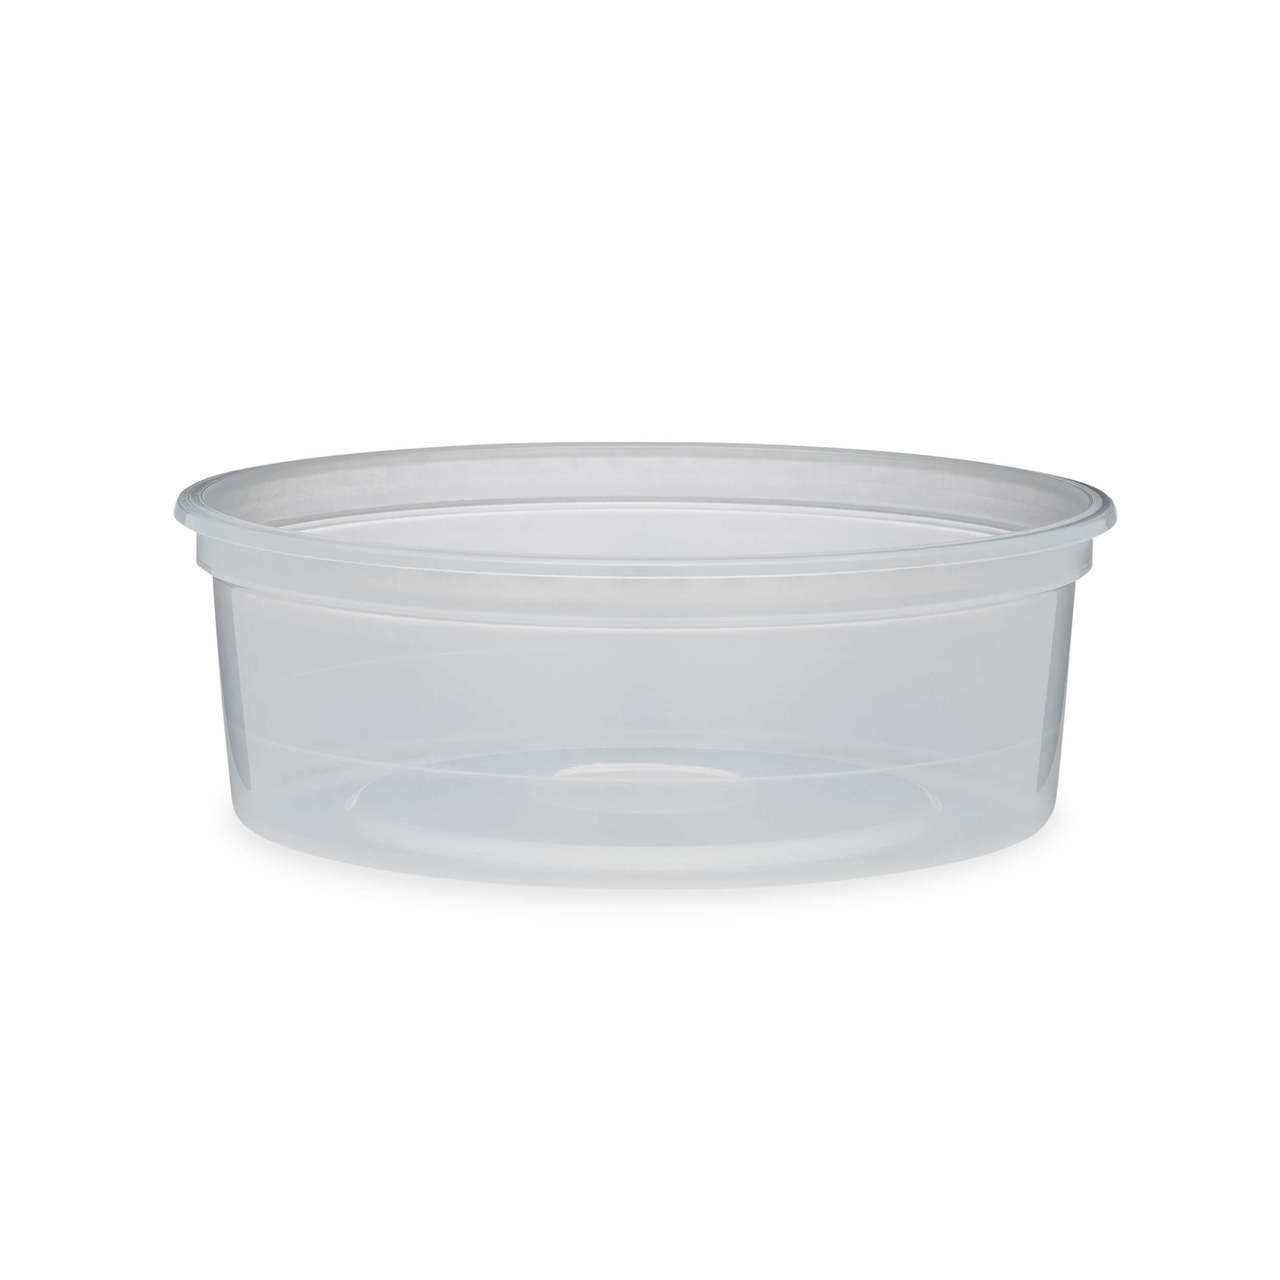 b38ec1c447d7 8 oz Natural PP Plastic Round Snap-Lock Containers - 29110-B